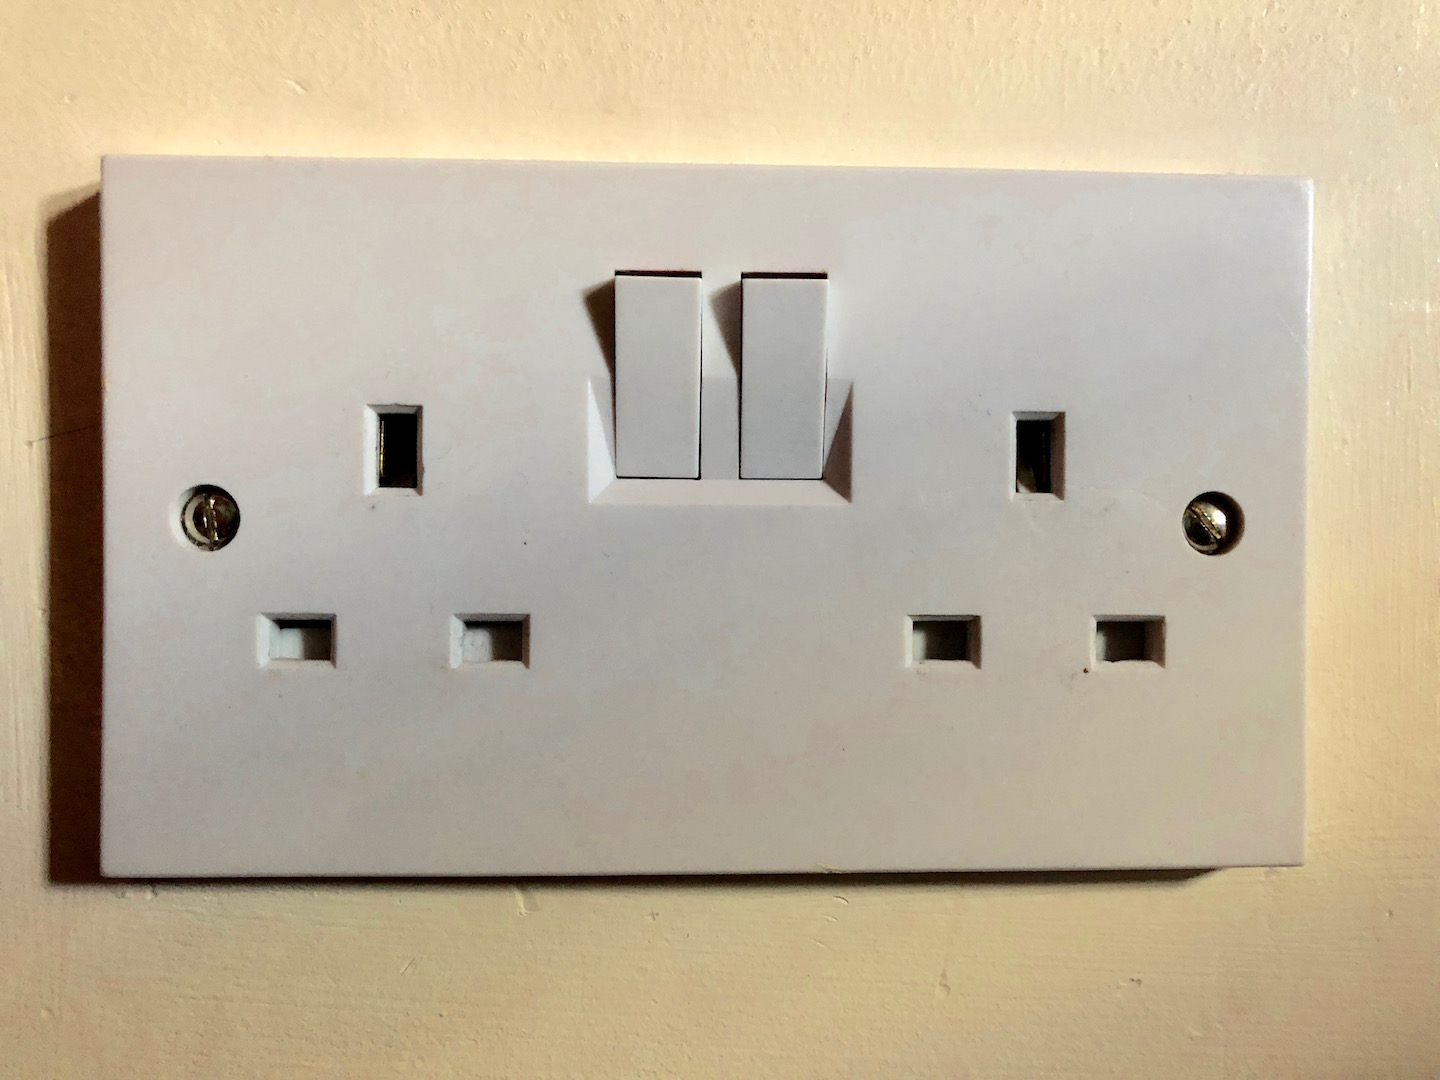 Why is there a light switch on this outlet? – Blogging a Greener ireland